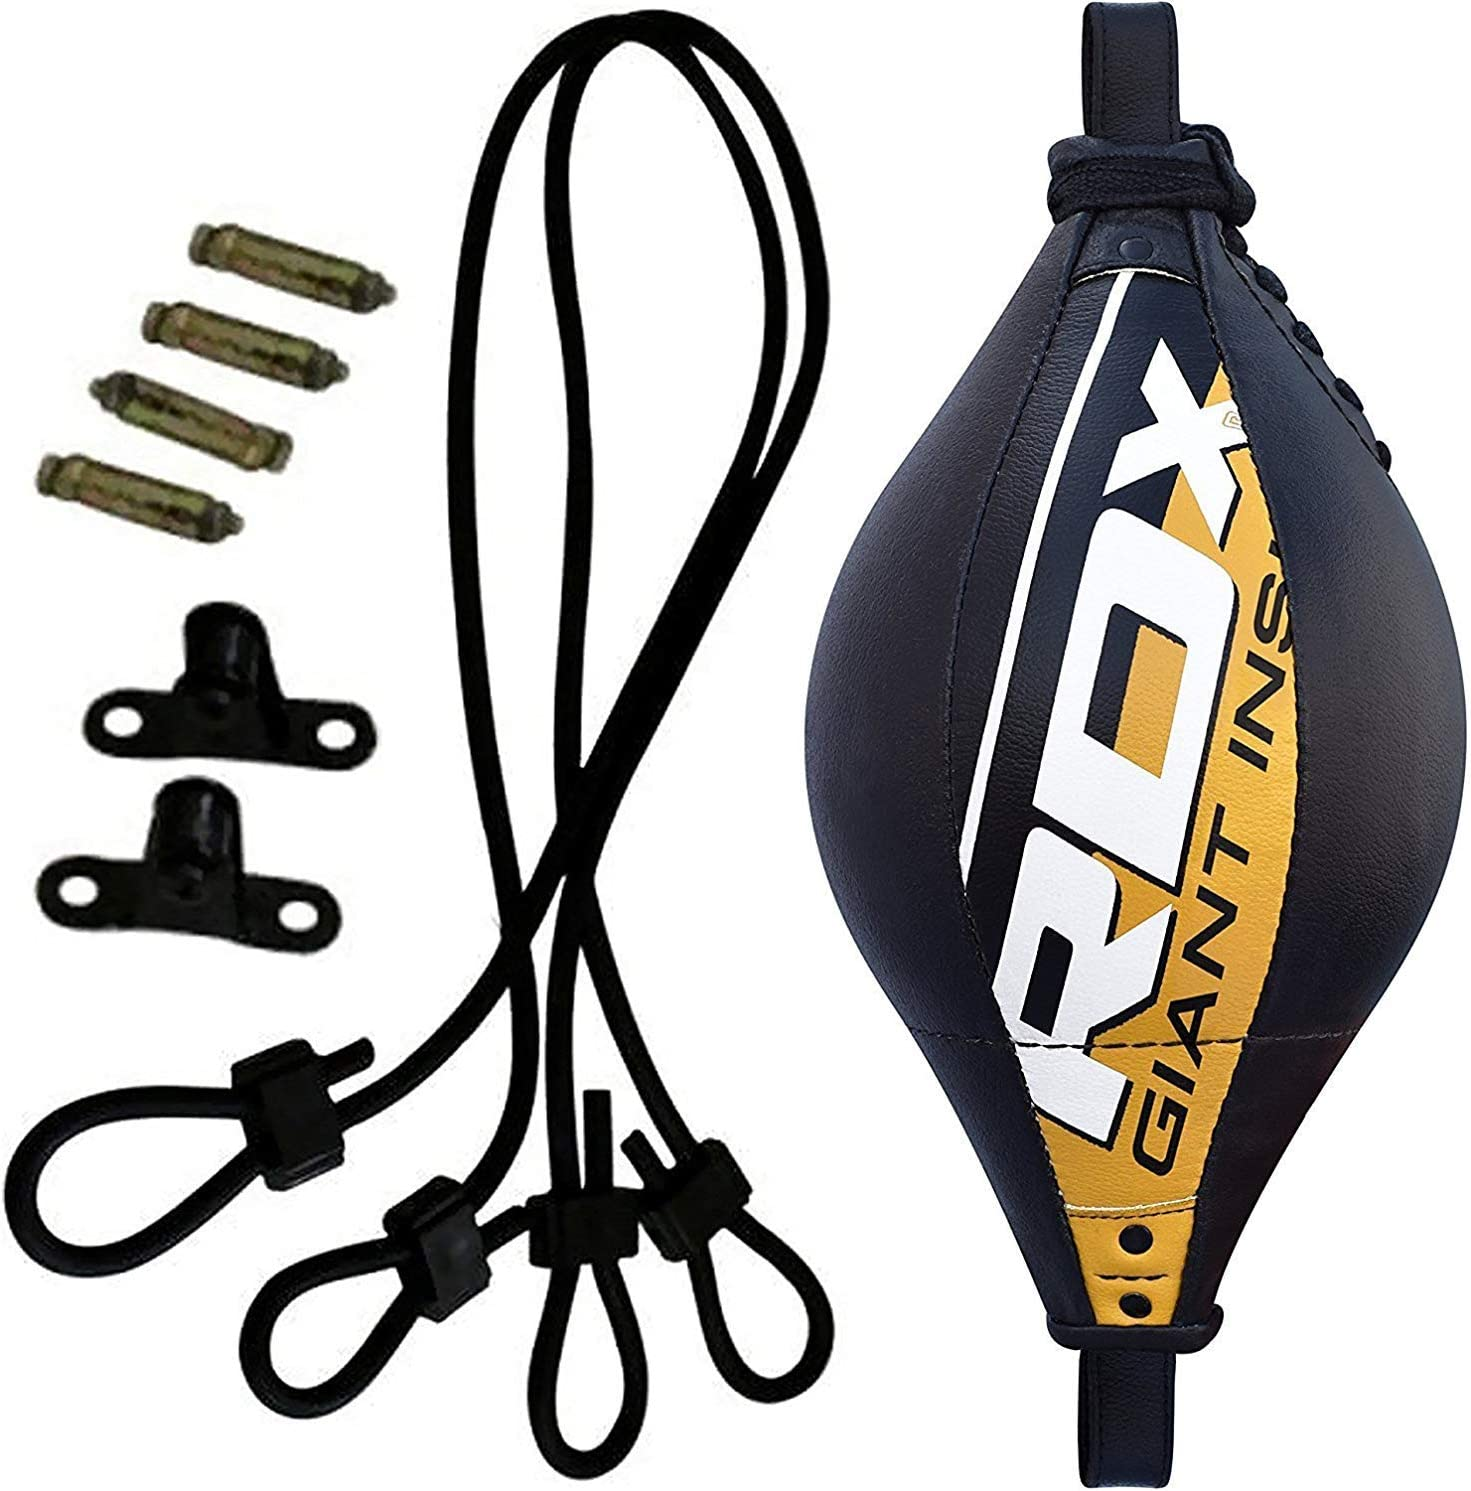 RDX Double End Speed Ball Bag Maya Hide Leather Boxing Floor to Ceiling Rope MMA Training Muay Thai Punching Dodge Striking Speed Ball Kit Workout Adjustable Bungee Cord